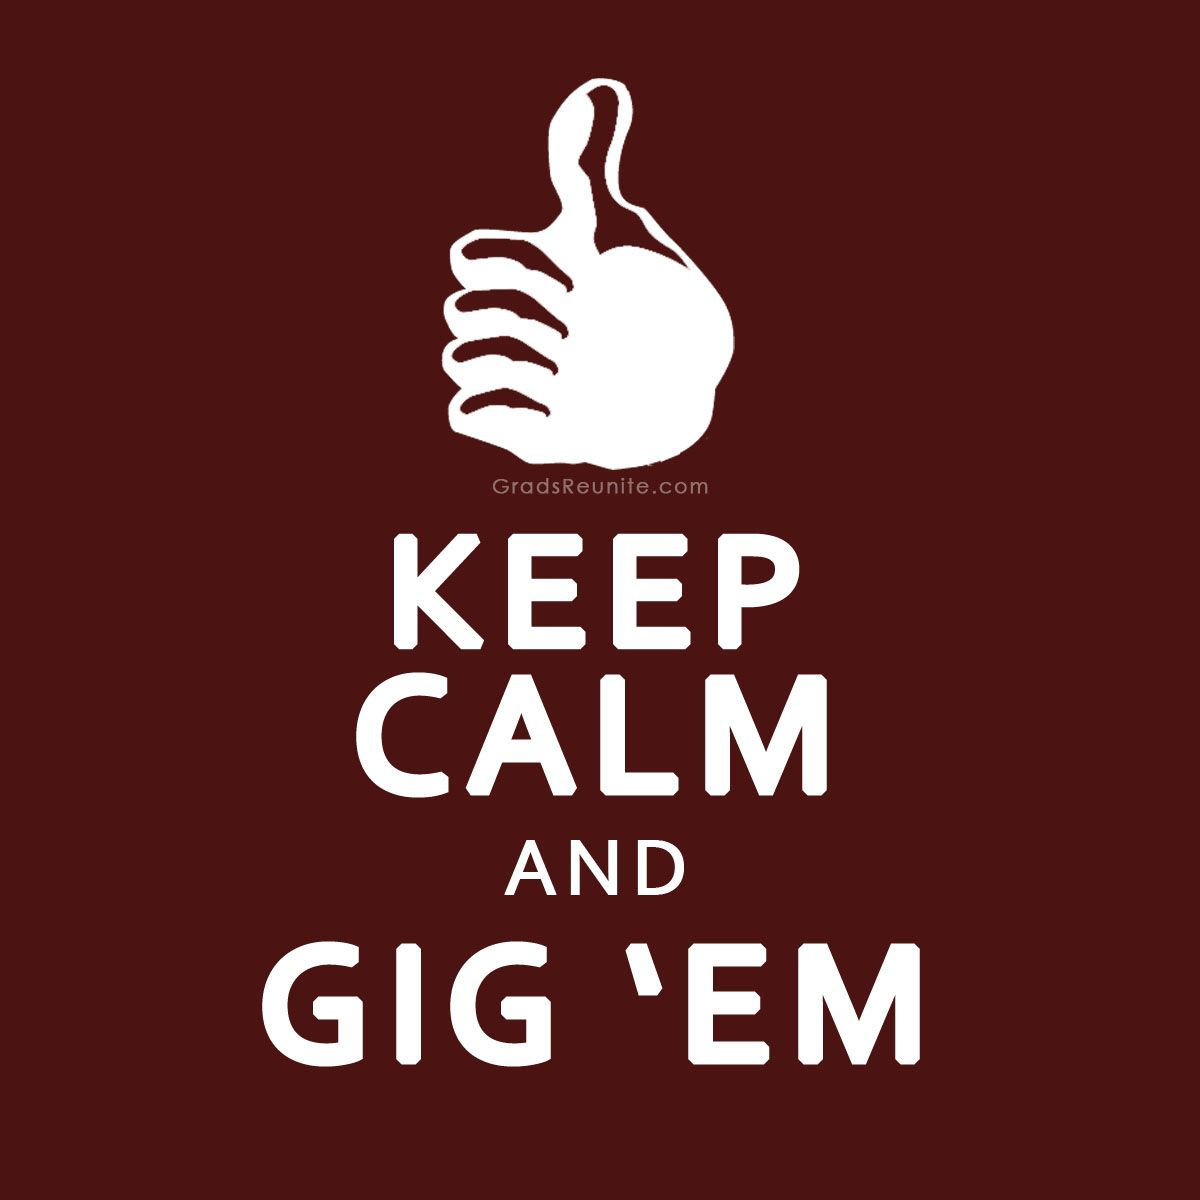 Color printing tamu - Texas A M Gig Em Maybe I Will Print This Out As A